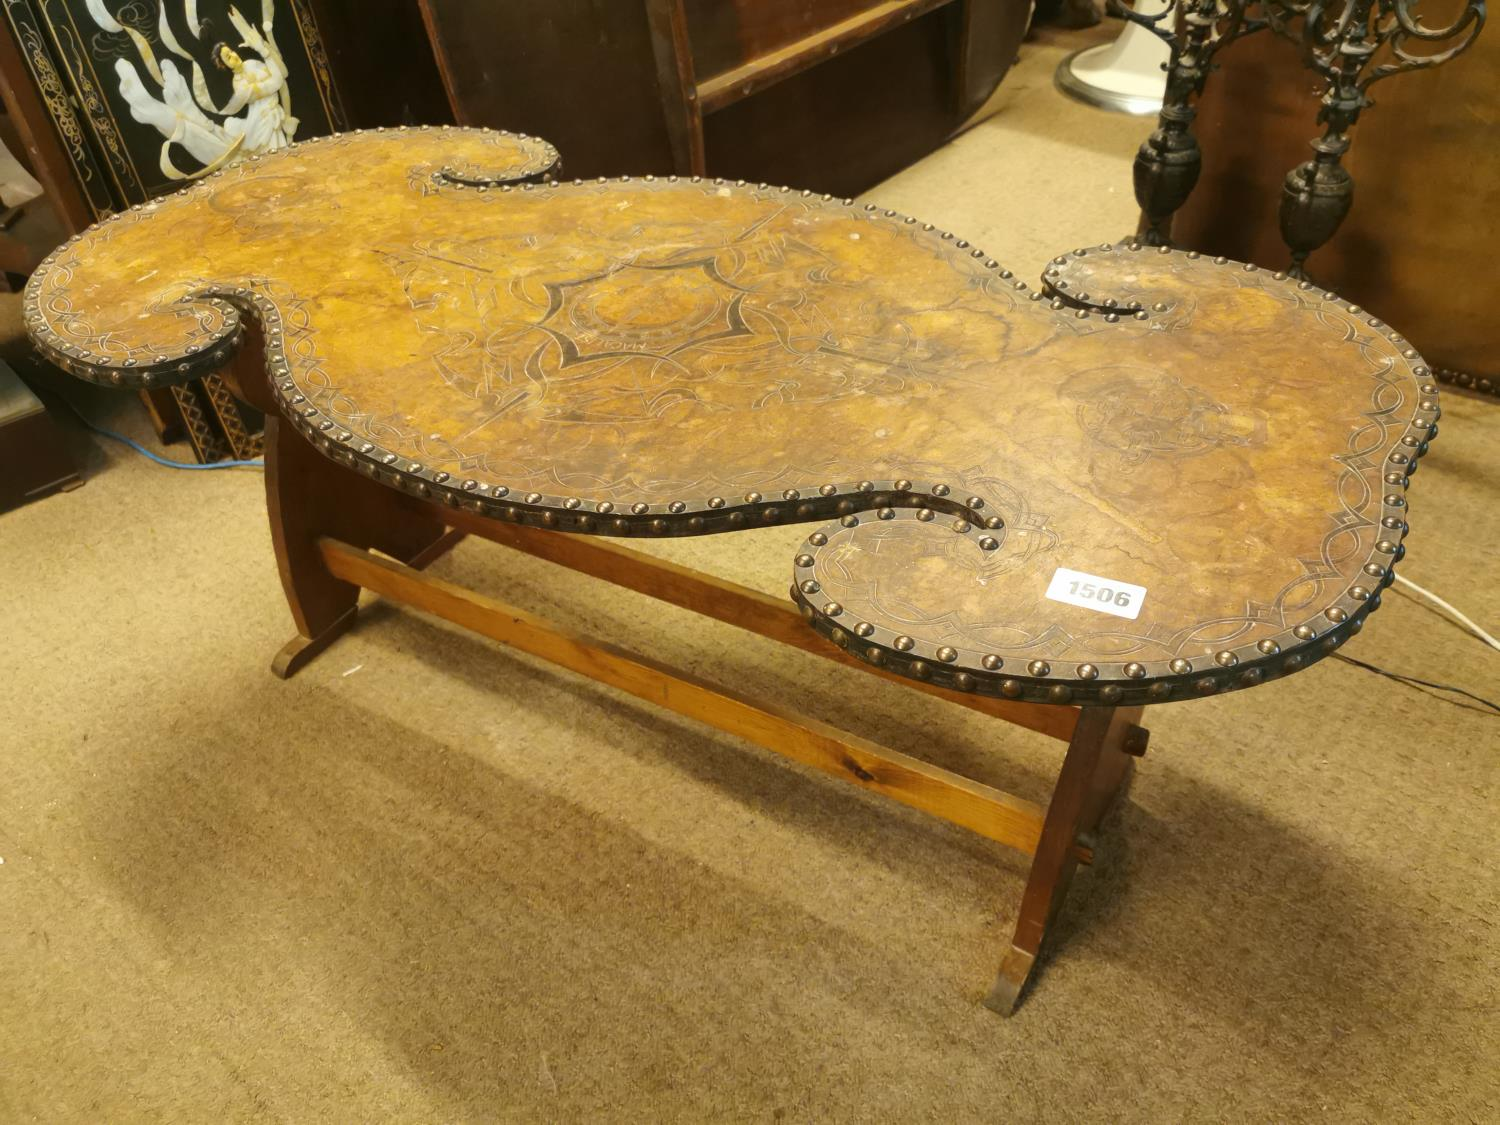 Prison Art table with tooled leather top